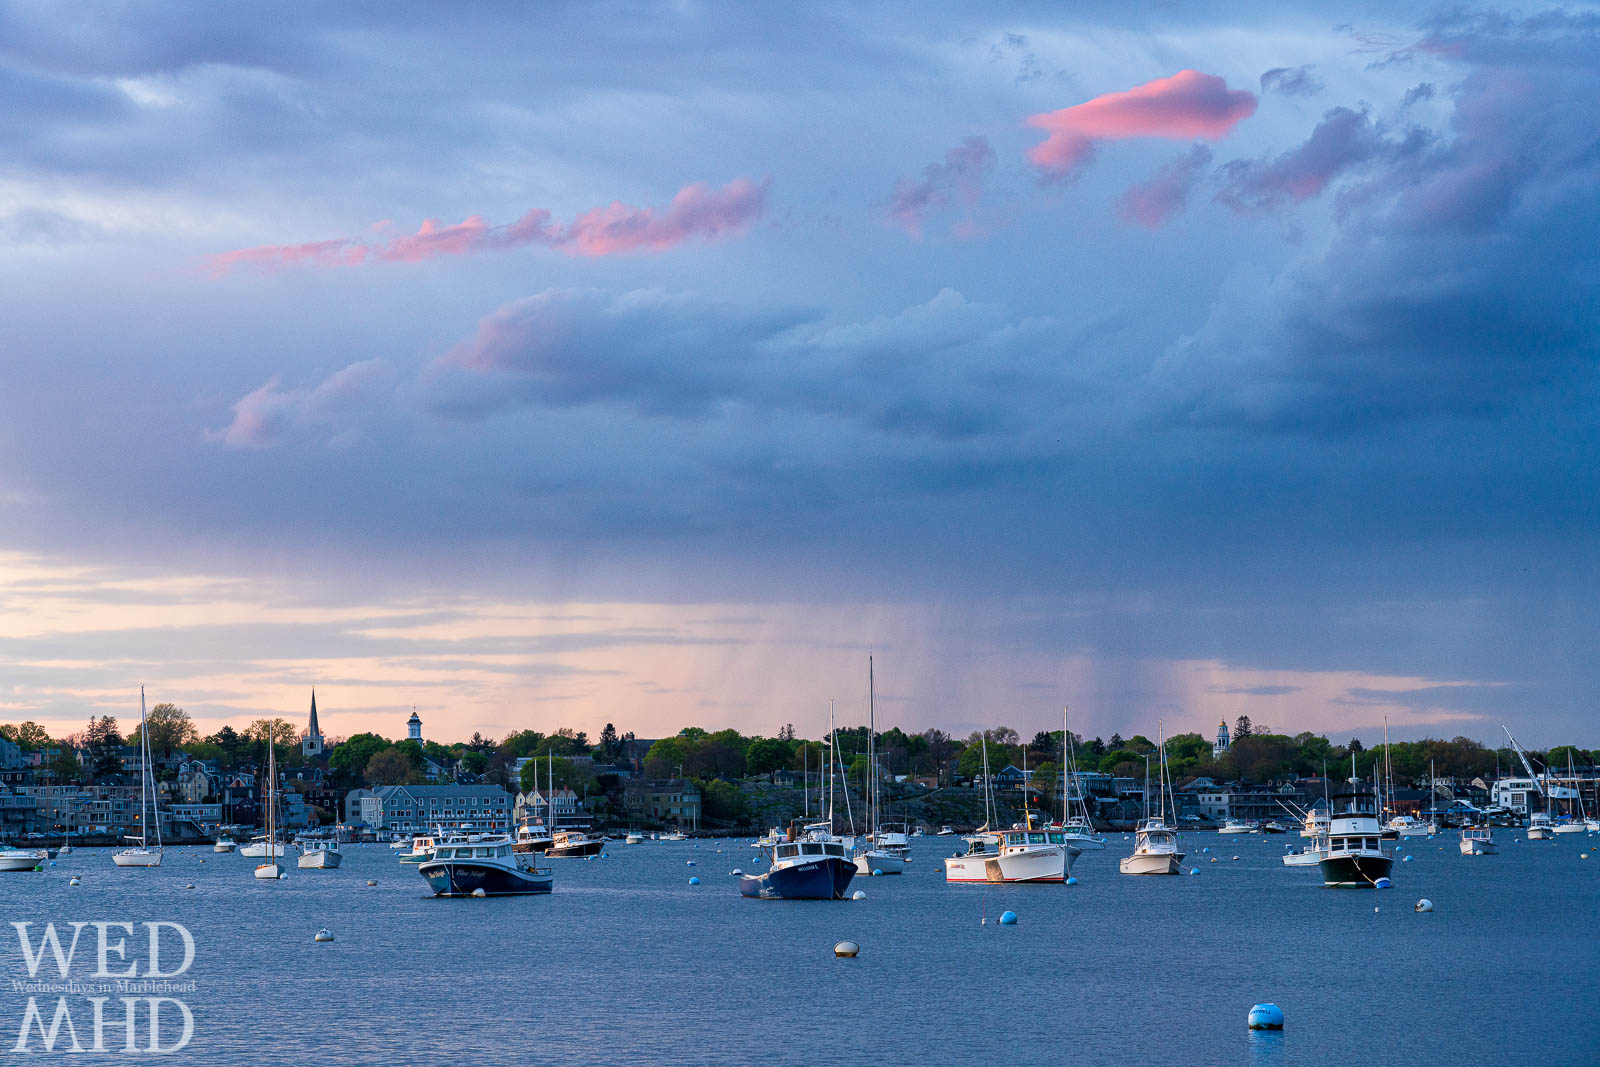 Rain clouds pass over Marblehead's mid-harbor resulting in pink clouds mixed with showers on a backdrop of familiar landmarks